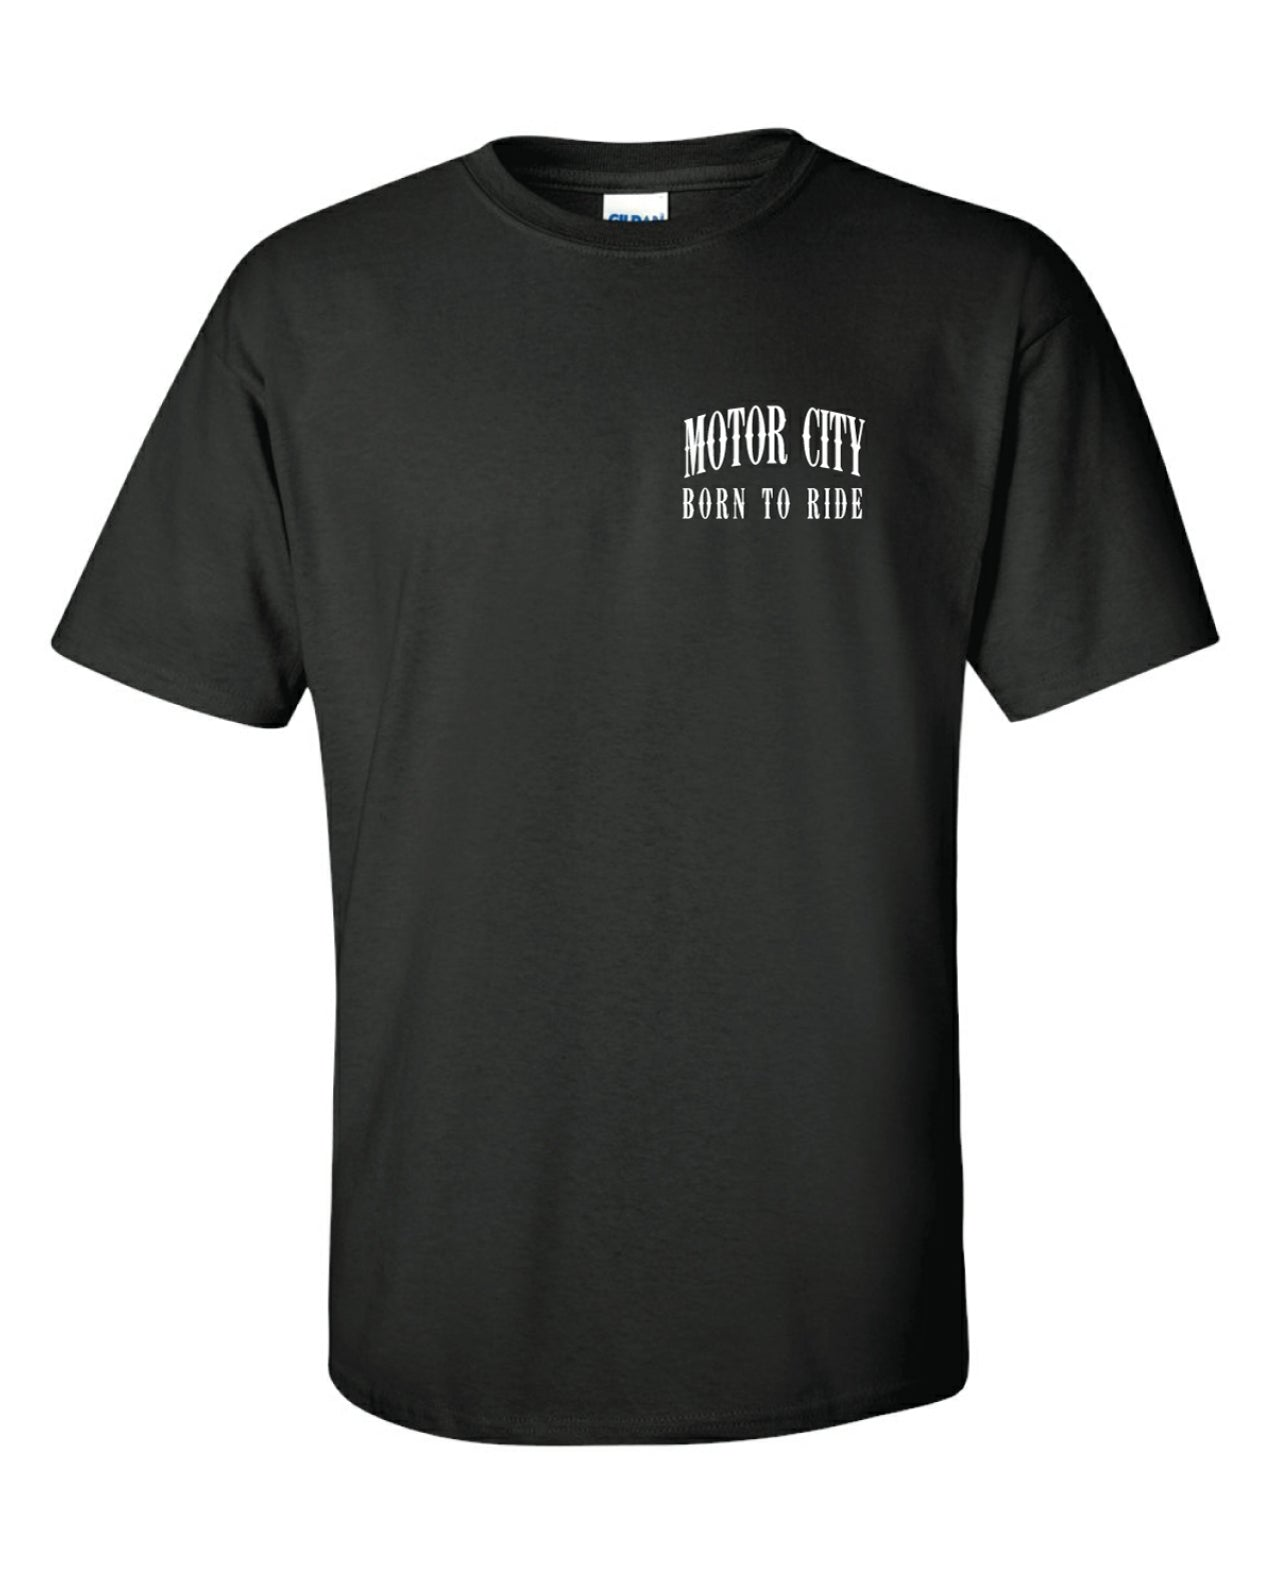 MOTOR CITY BORN TO RIDE BIKER T-SHIRT